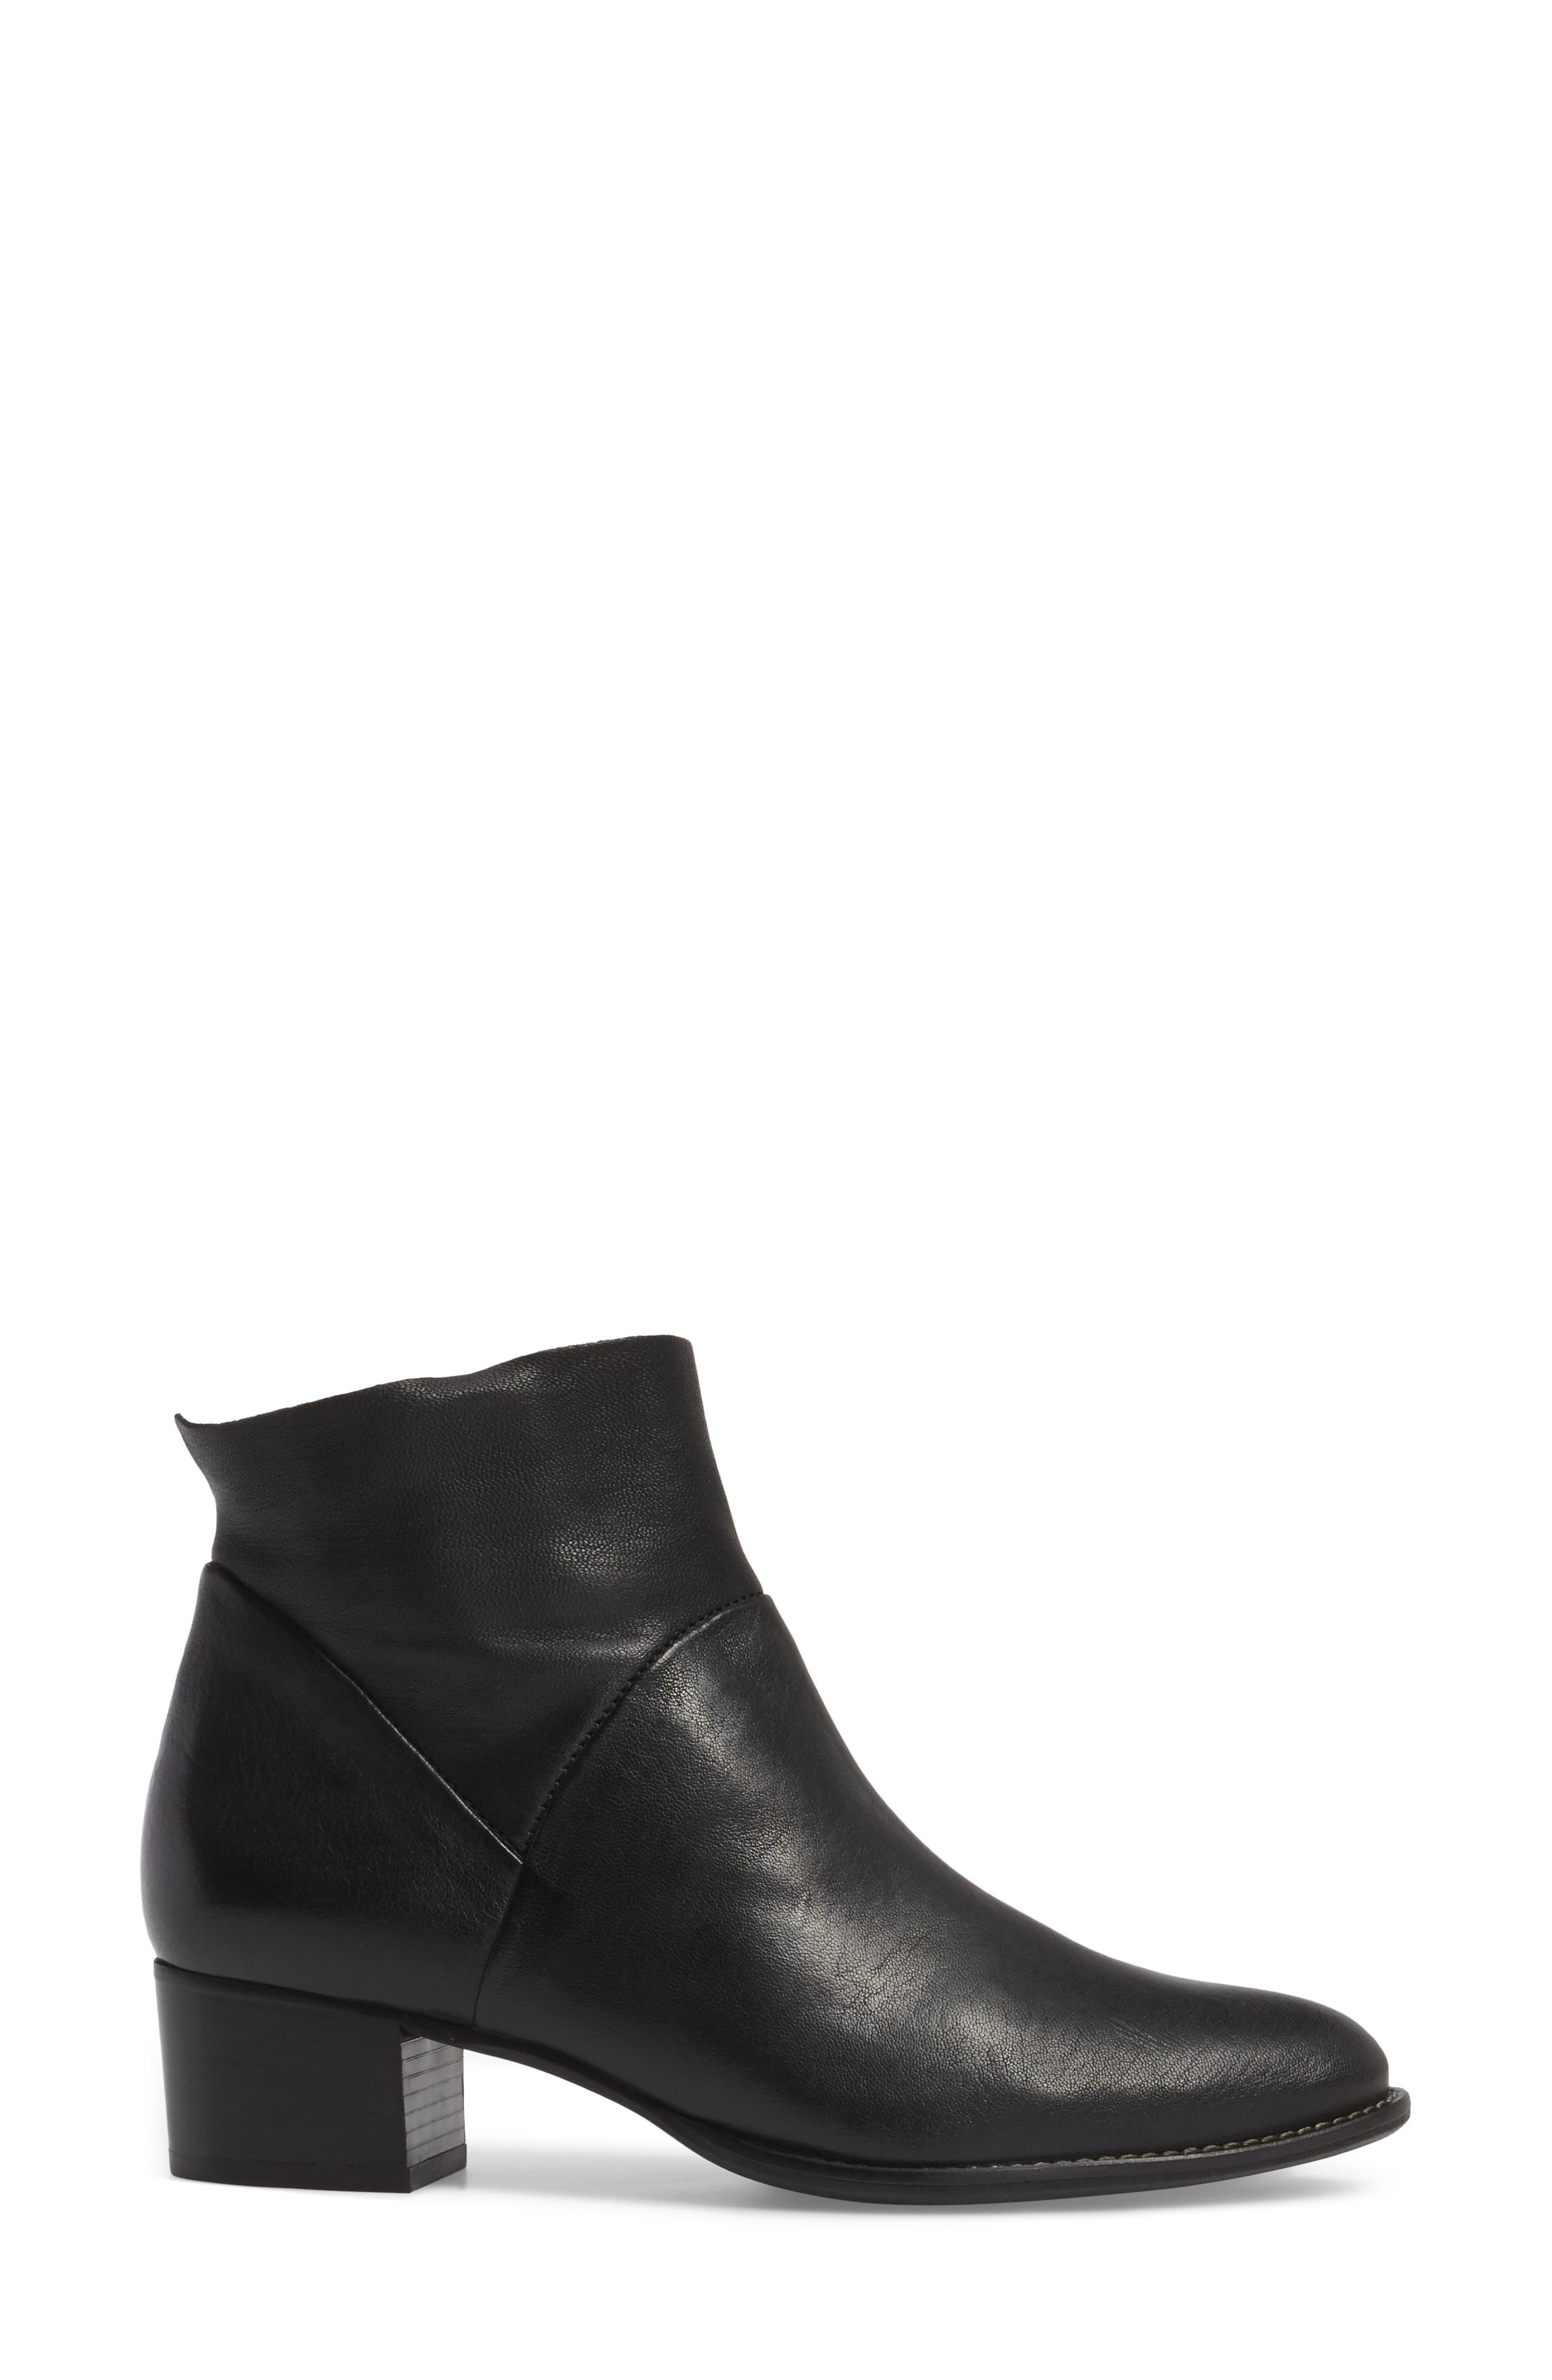 Nelly Bootie,                             Alternate thumbnail 3, color,                             BLACK LEATHER